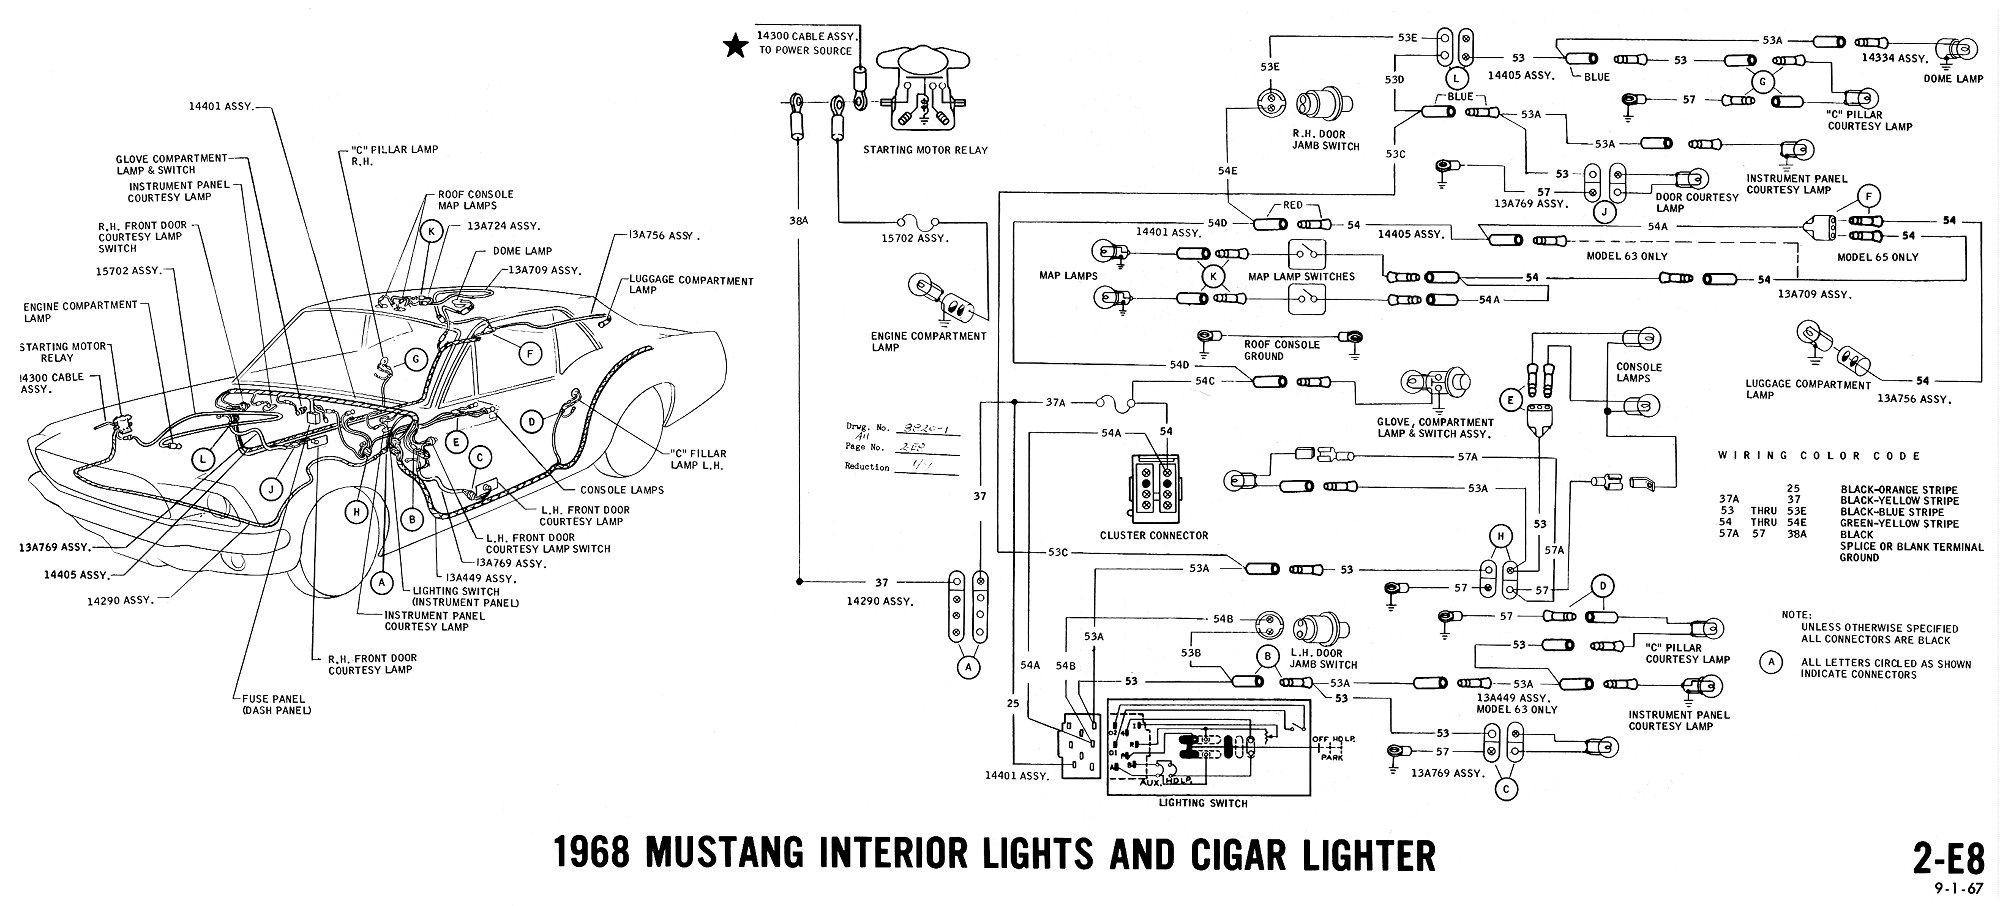 1968 mustang wiring diagrams evolving software rh peterfranza com 1970 mustang wiring schematic 1970 Mustang Dash Wiring Schematic